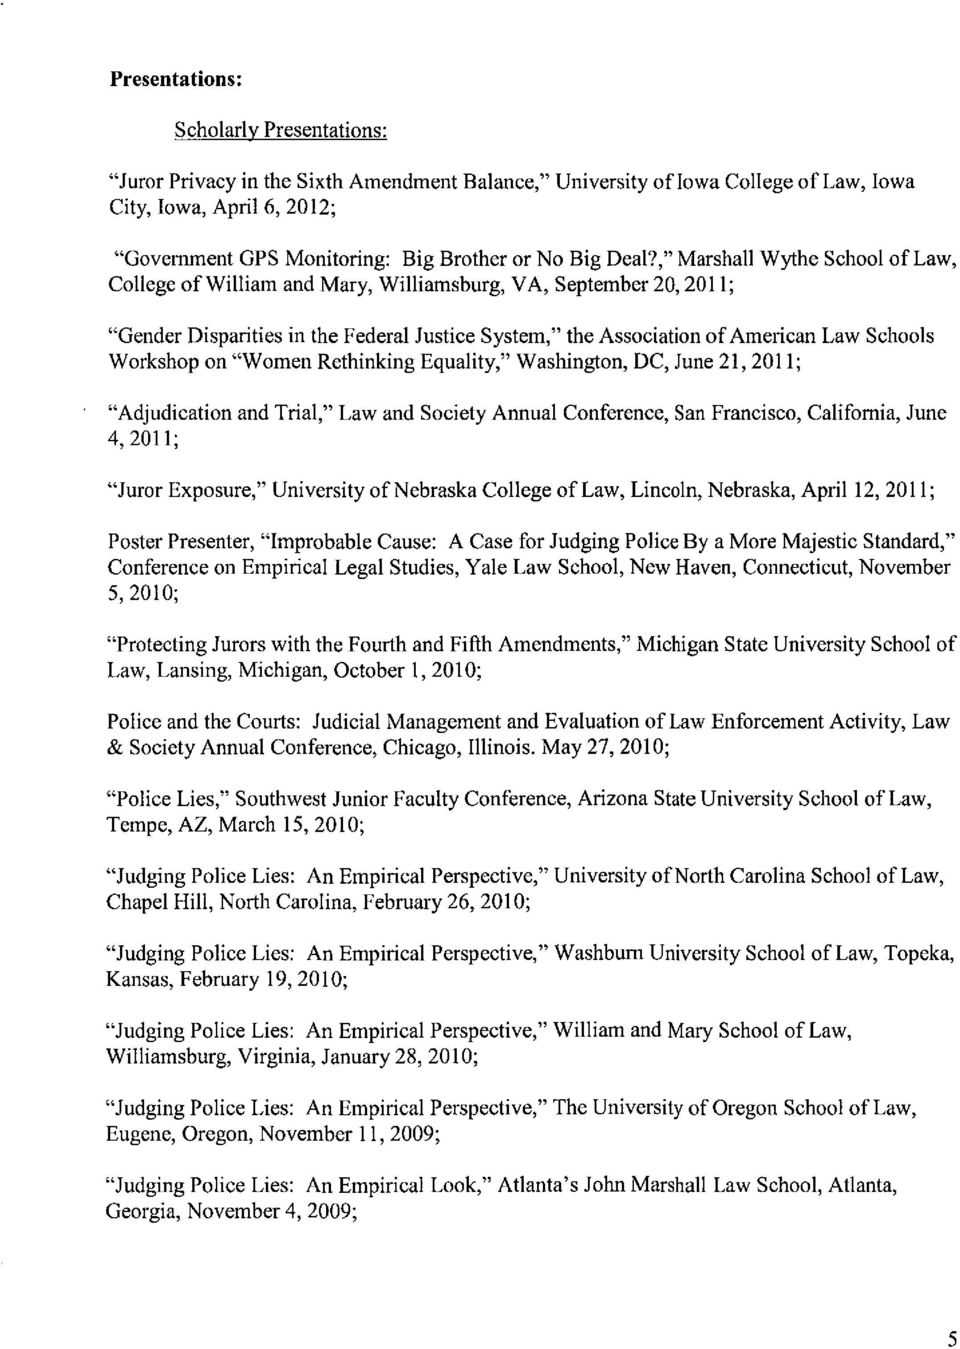 ","" Marshall Wythe School of Law, College of William and Mary, Williamsburg, VA, September 20, 2011; ""Gender Disparities in the Federal Justice System,"" the Association of American Law Schools"